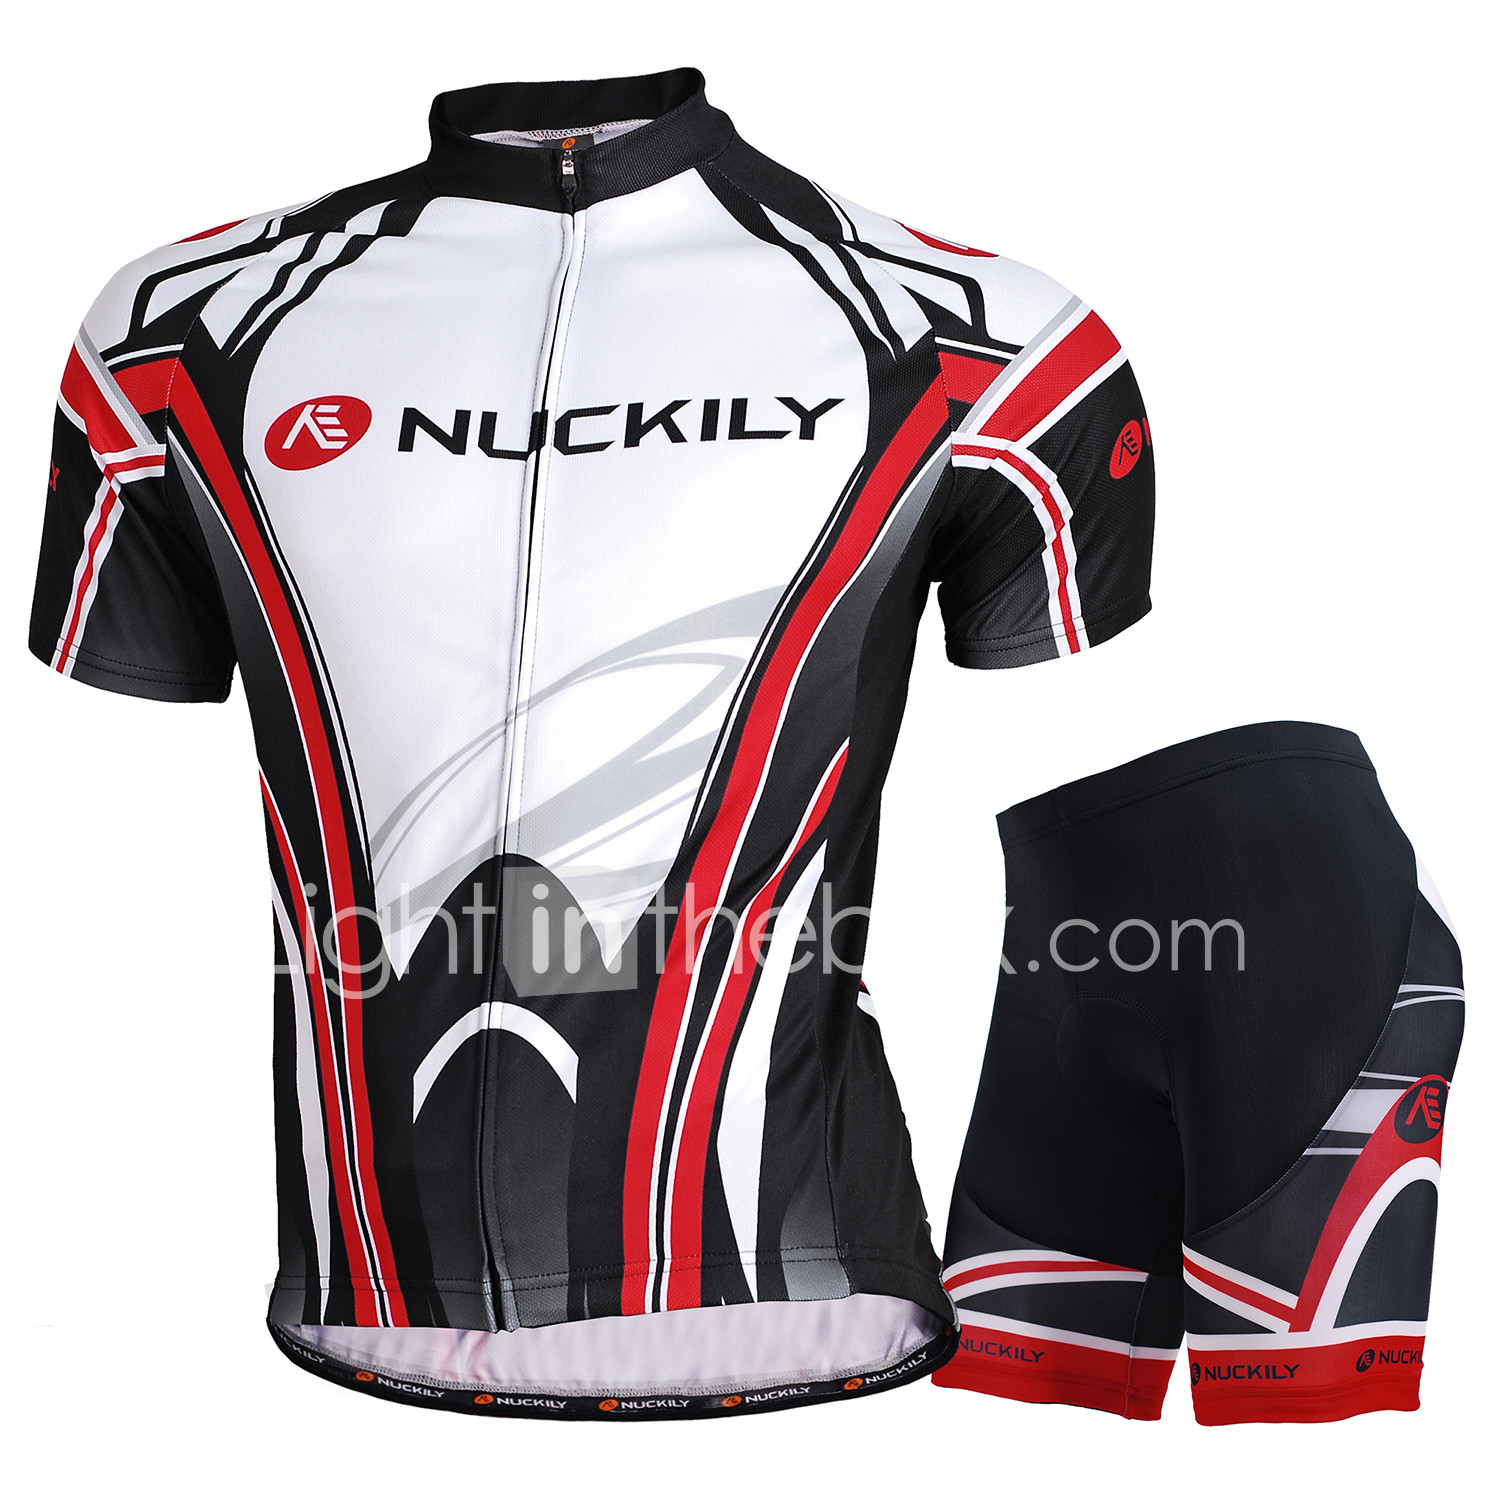 Nuckily Short Sleeve Cycling Jersey with Shorts - Black Bike Shorts Jersey  Clothing Suit Waterproof Breathable d8d318914